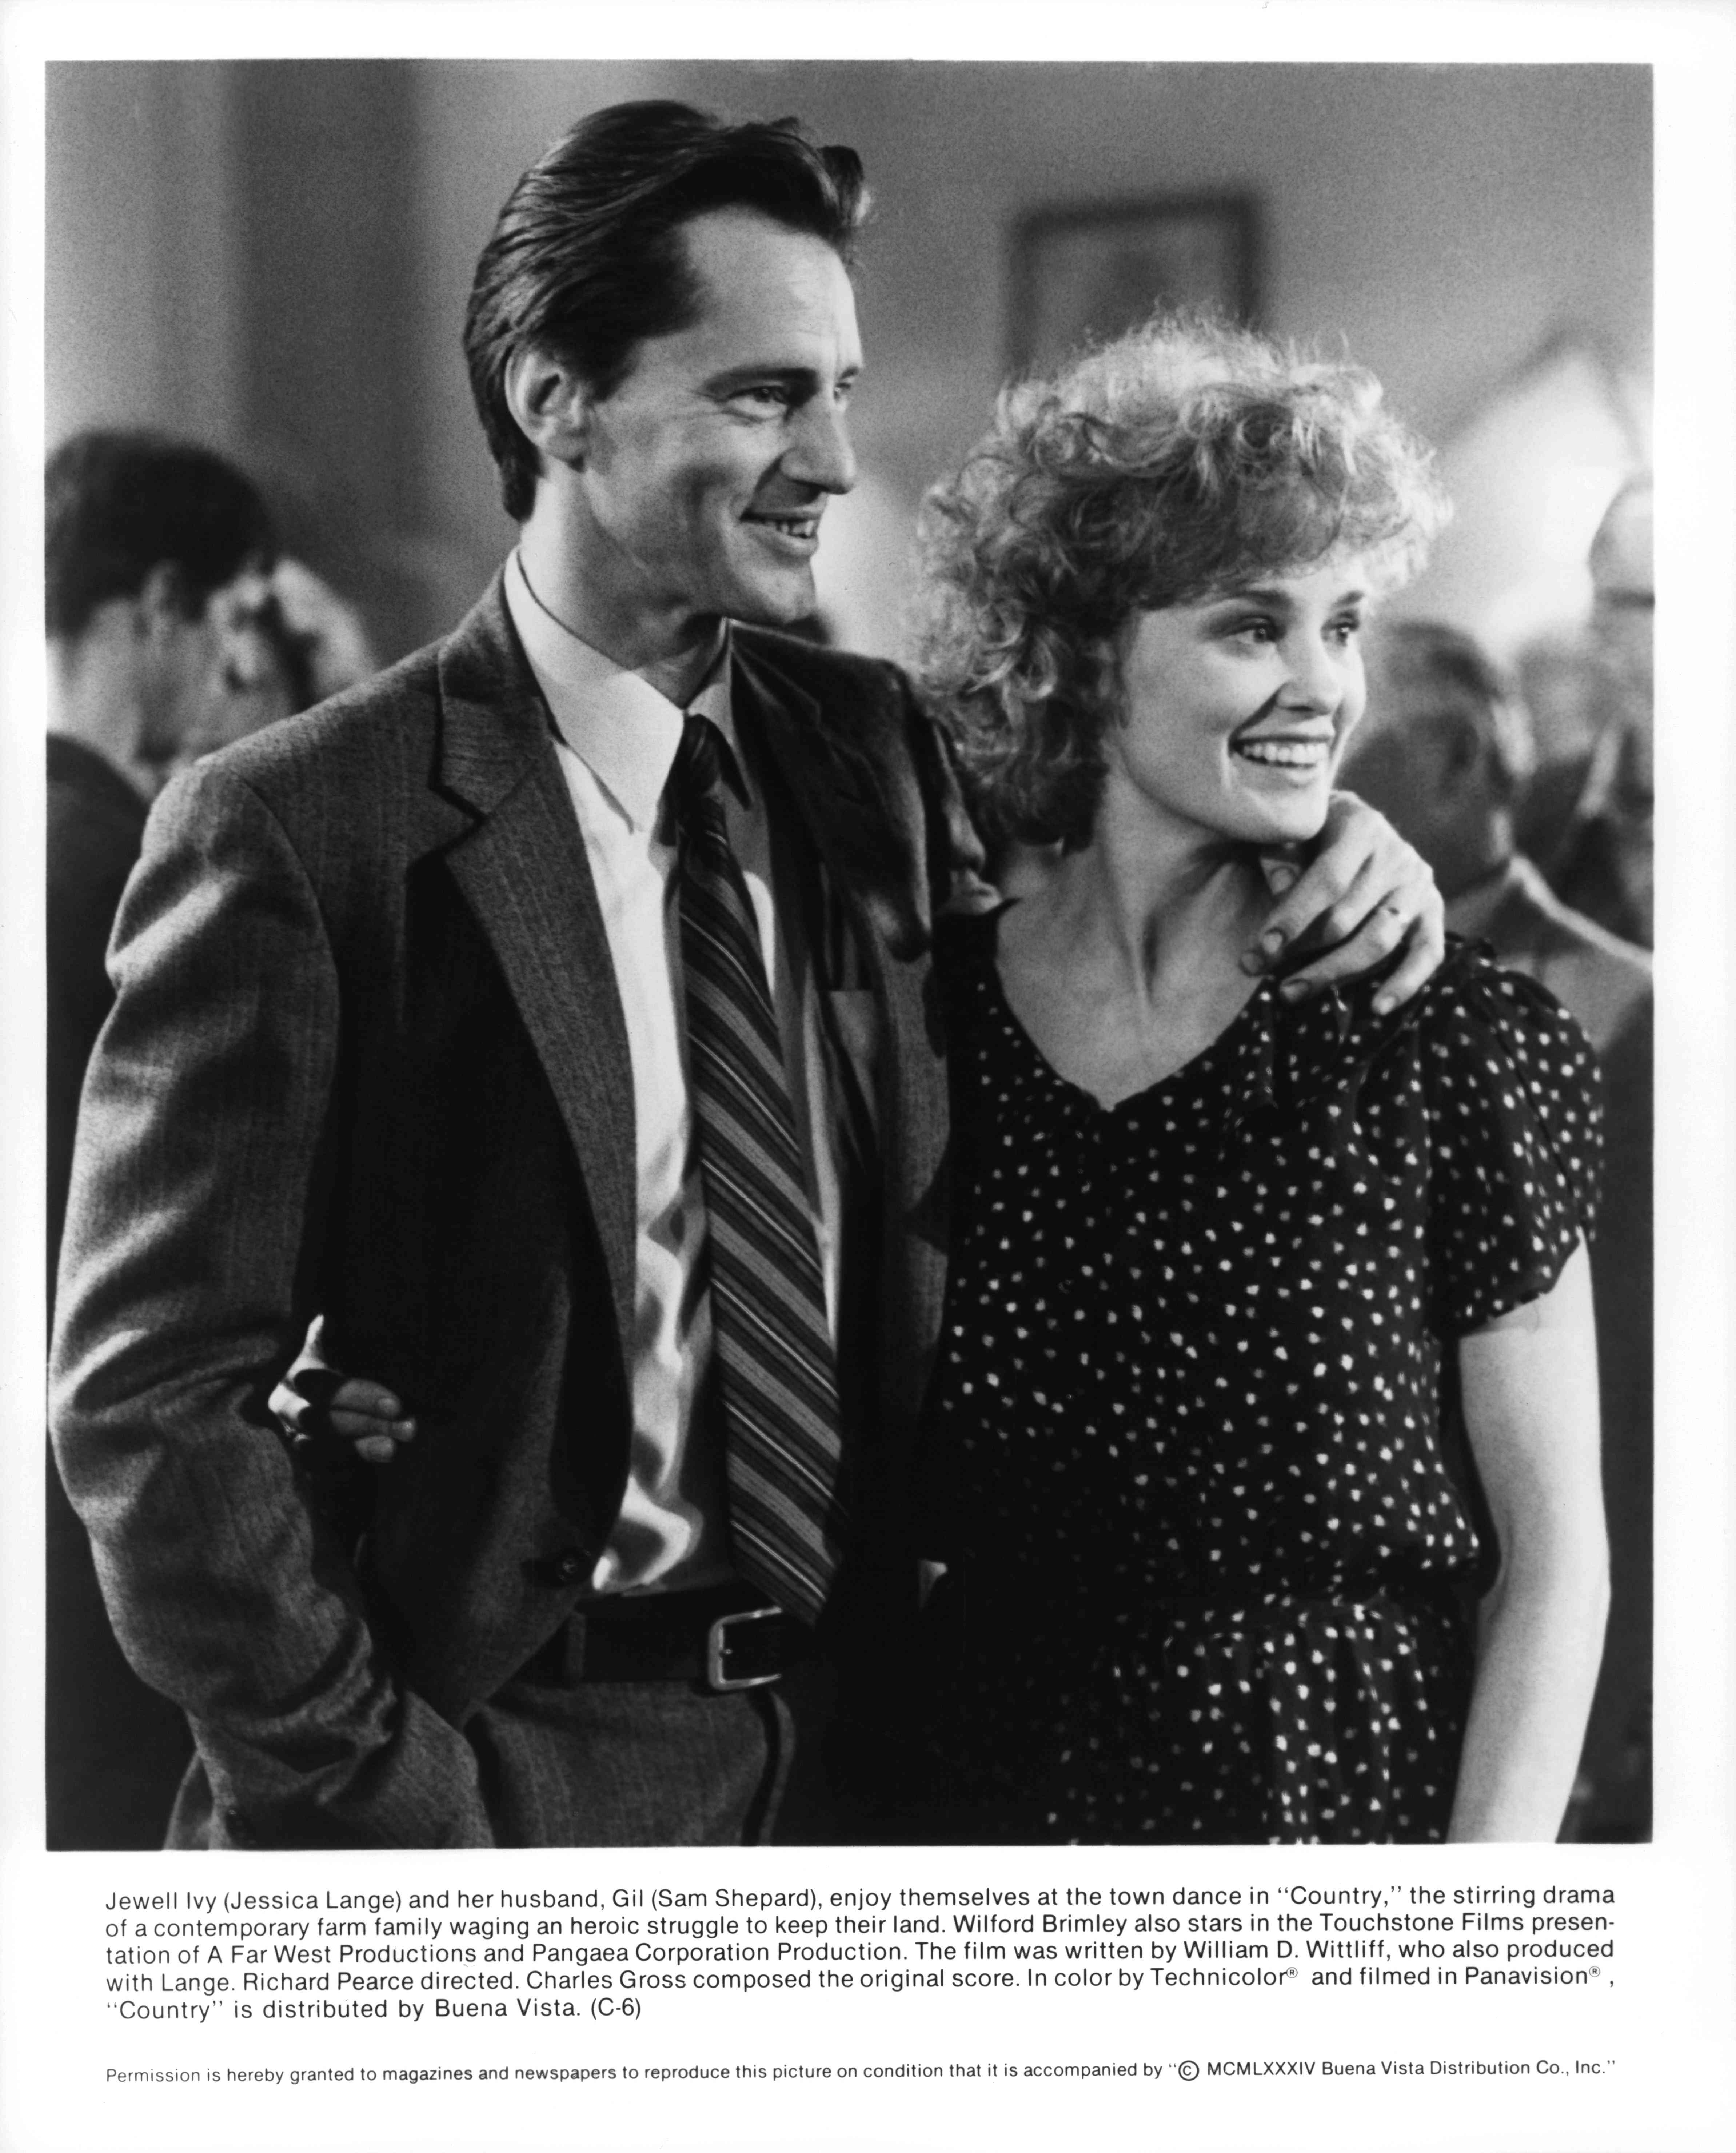 Sam Shepard and Jessica Lange, arms around each other, in a movie still